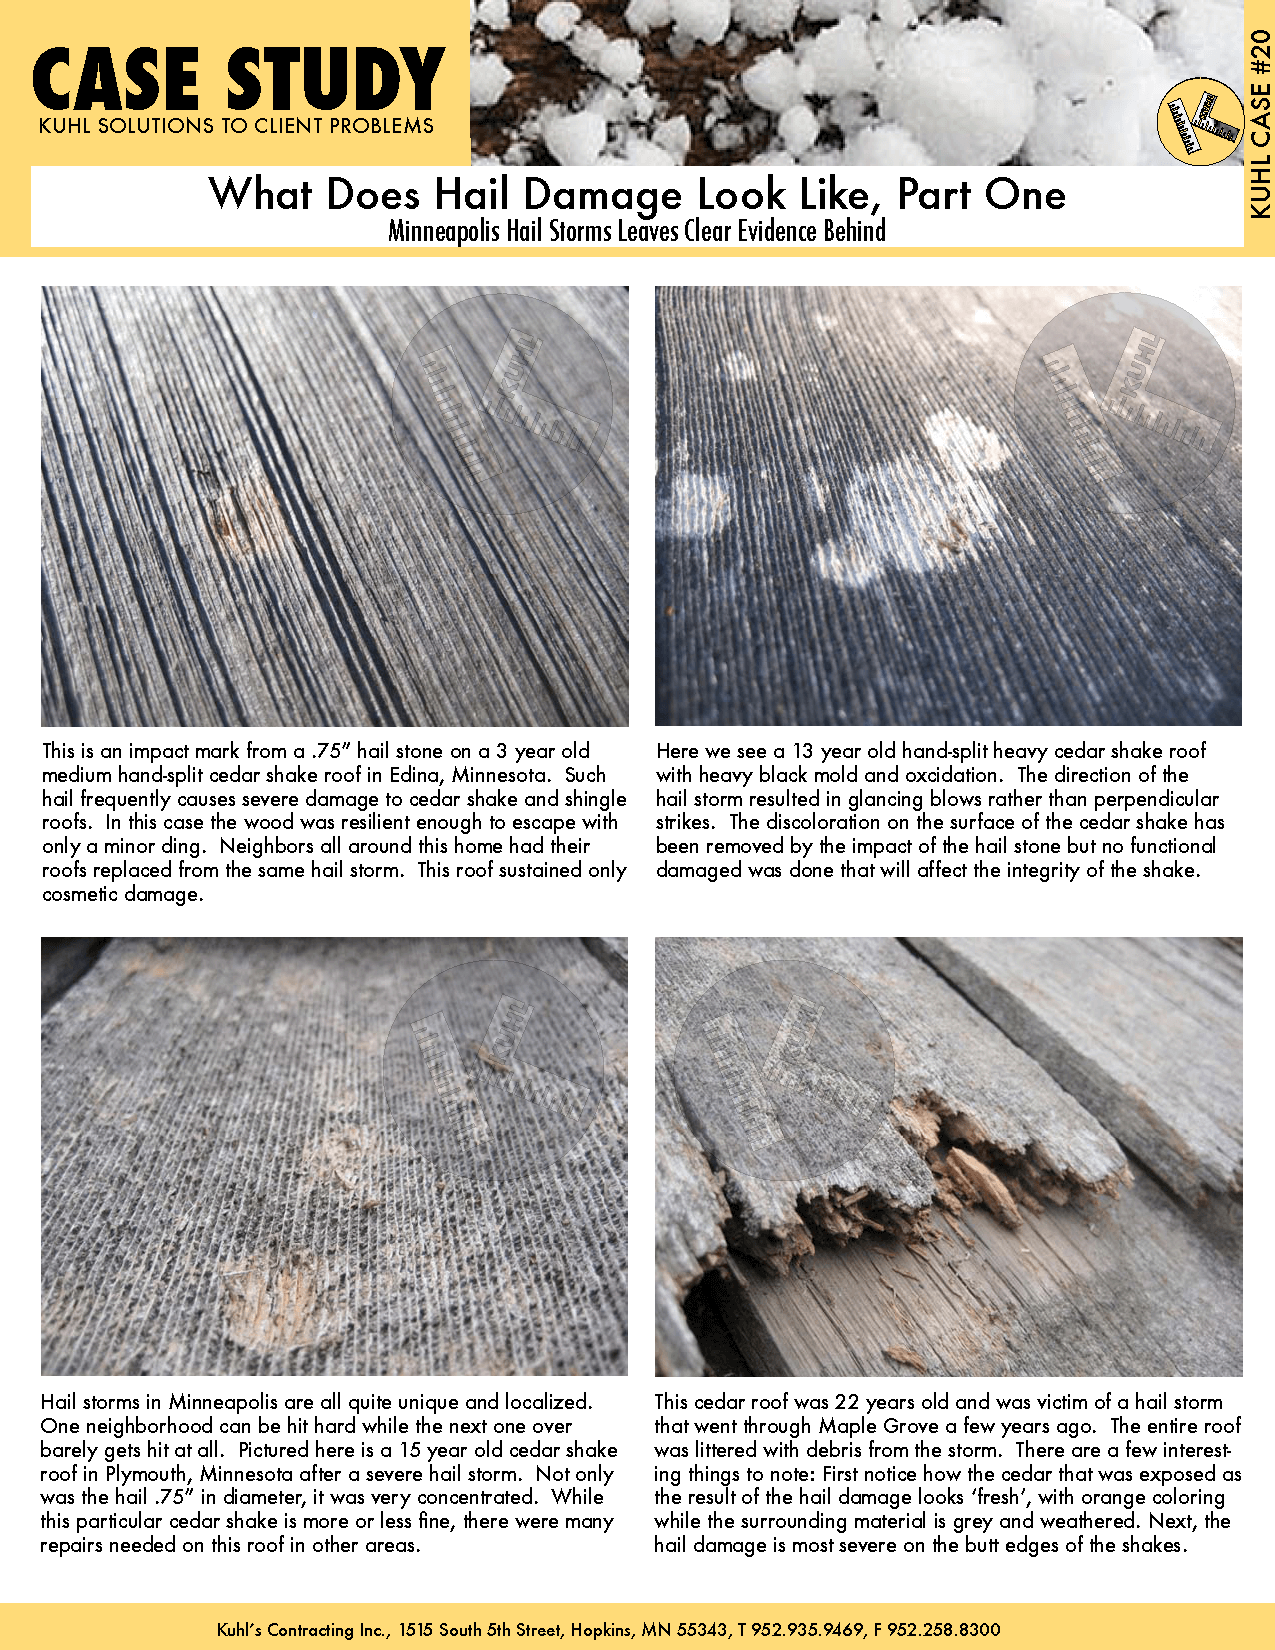 What Does Hail Damage Look Like, Part 1